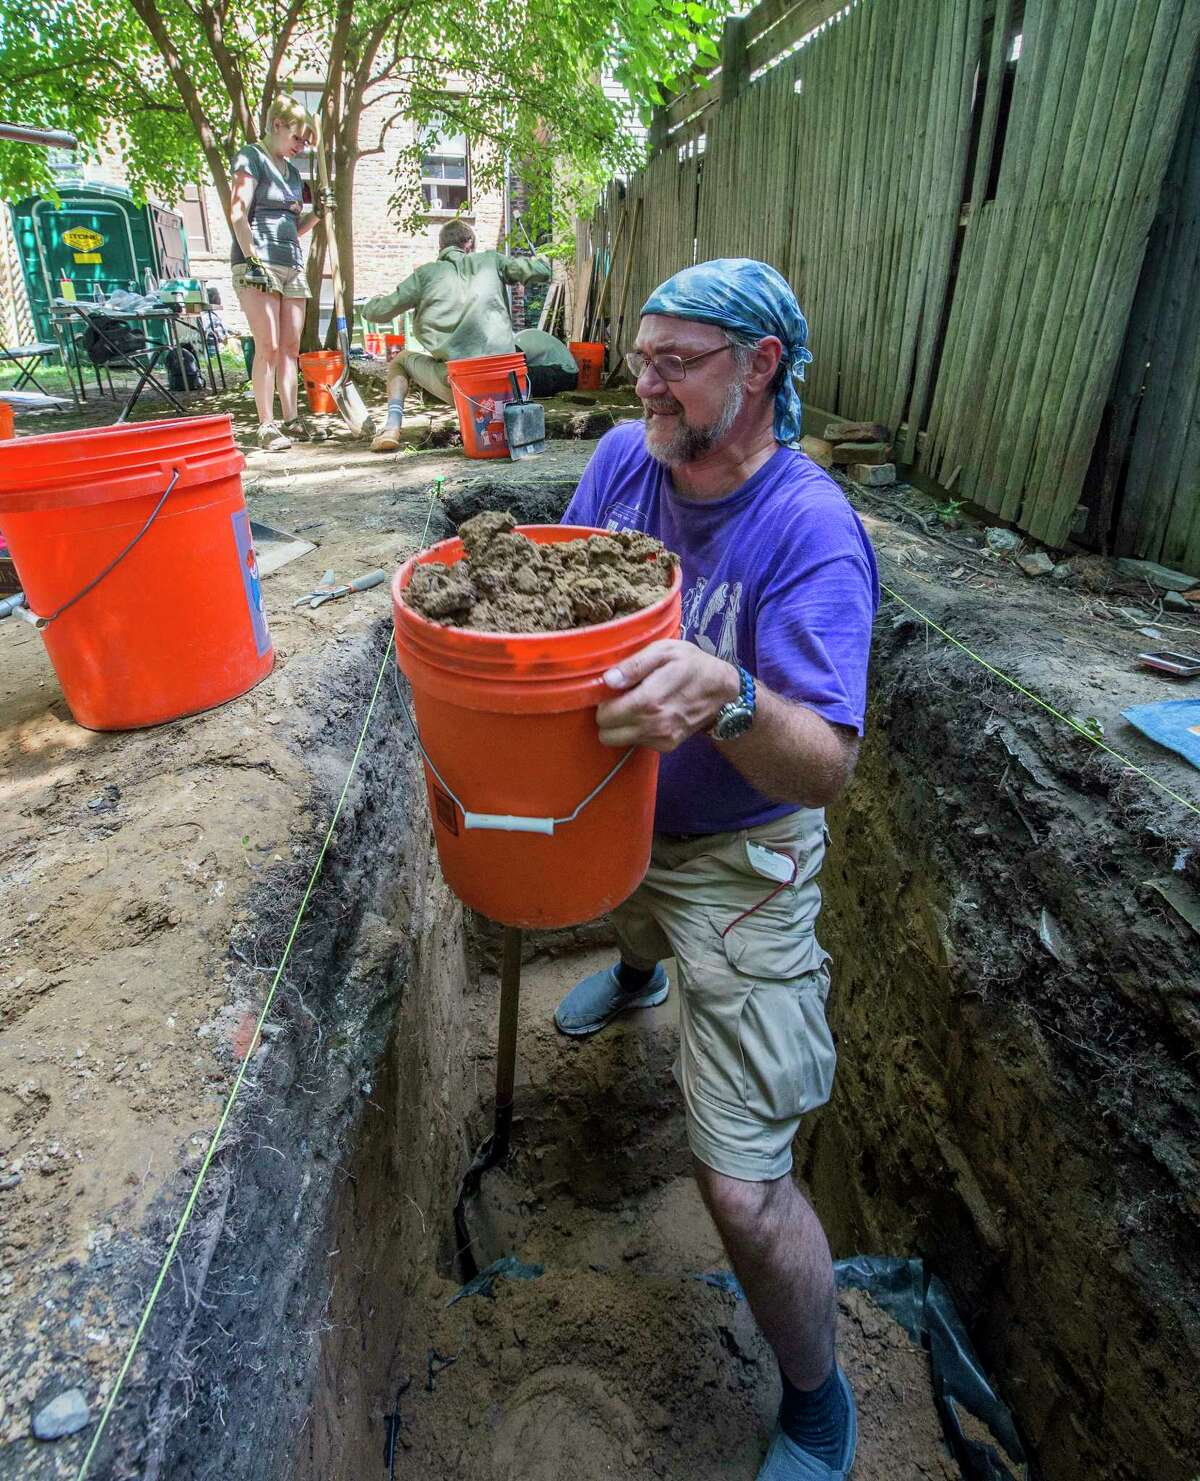 Professor Bradley Russell pulls up a bucket of dirt which may contain artifacts during the Archeology Filed School, a hands-on summer camp in which students learn about shelves of African-Americans in the Early 1800's on Wednesday, July 19, 2017, in Albany, N.Y. (Skip Dickstein/Times Union)